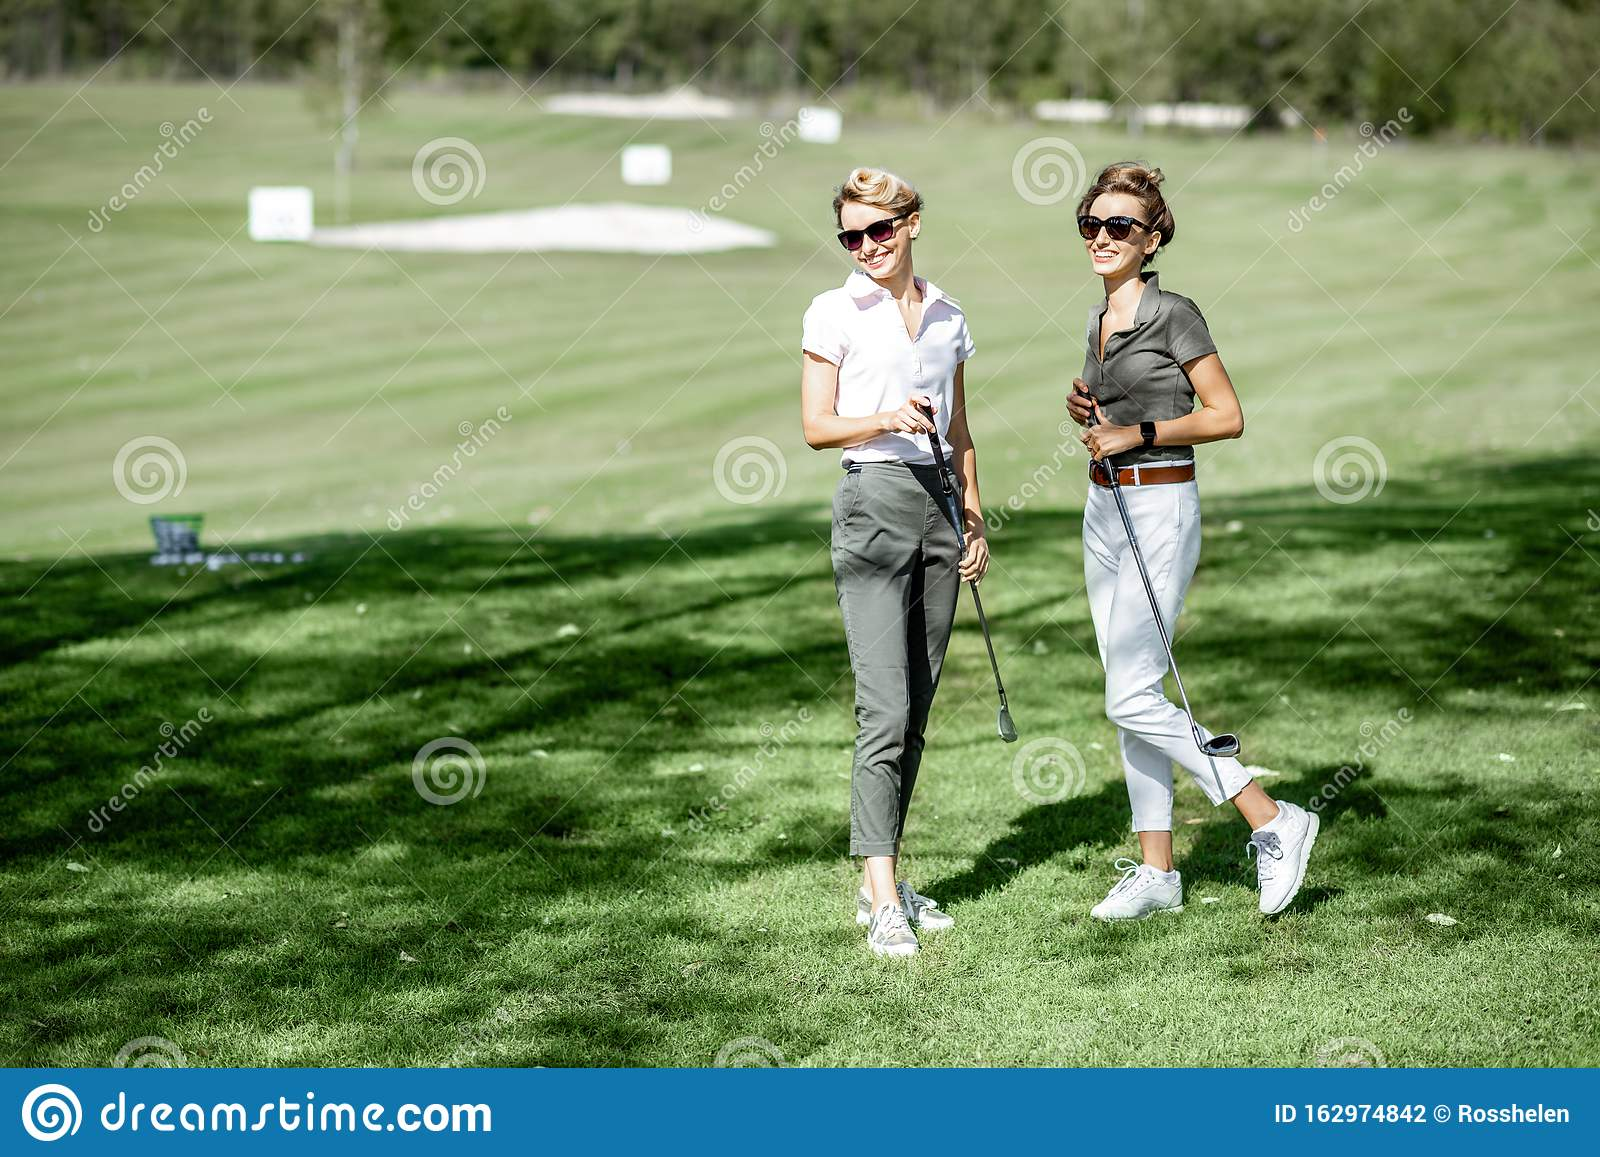 Two Female Golfers On Golf Course Stock Photo - Image of